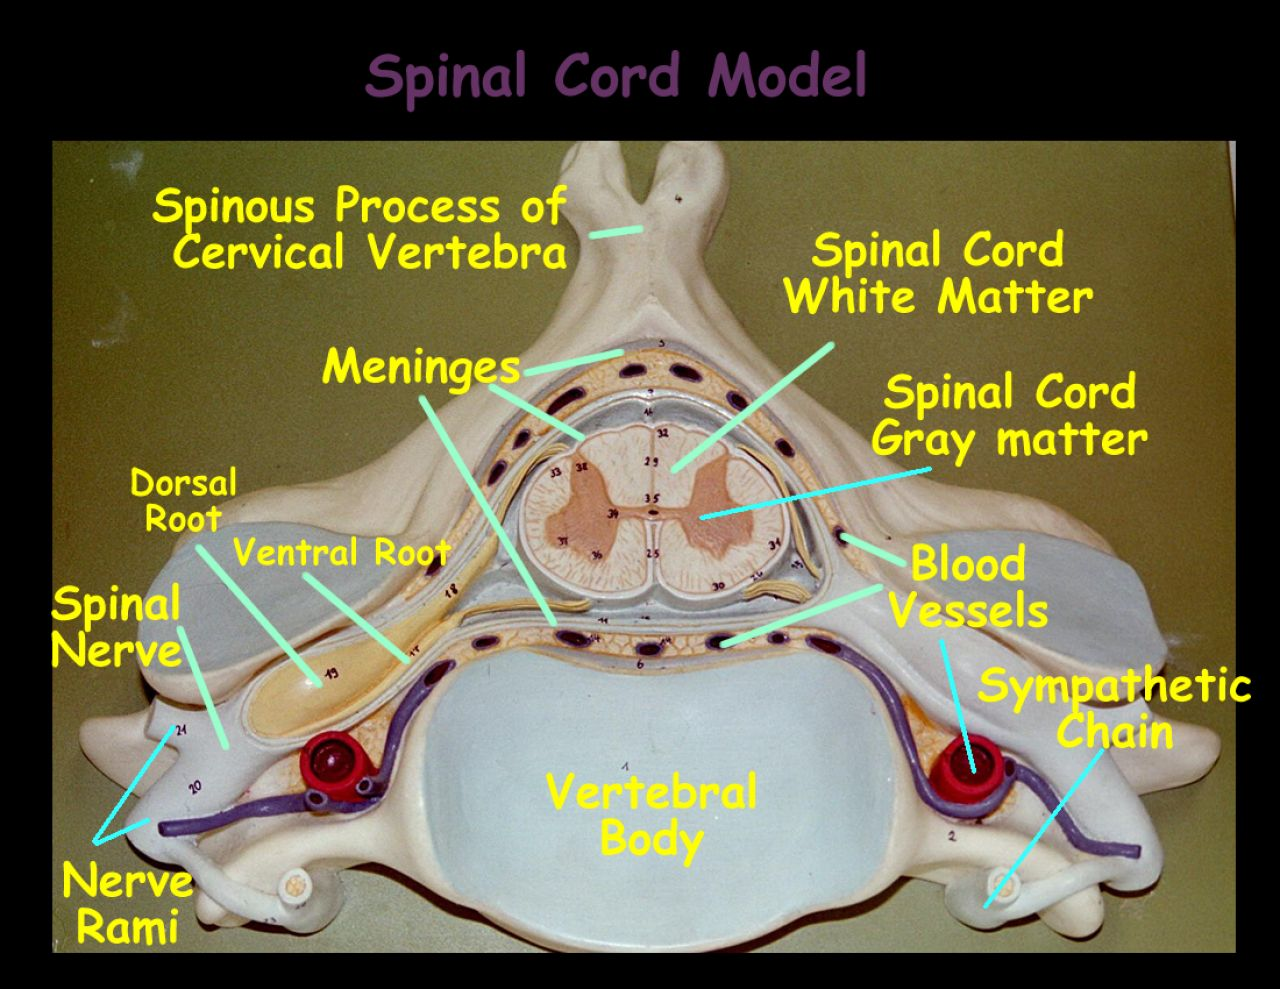 hight resolution of spinal cord model jpg